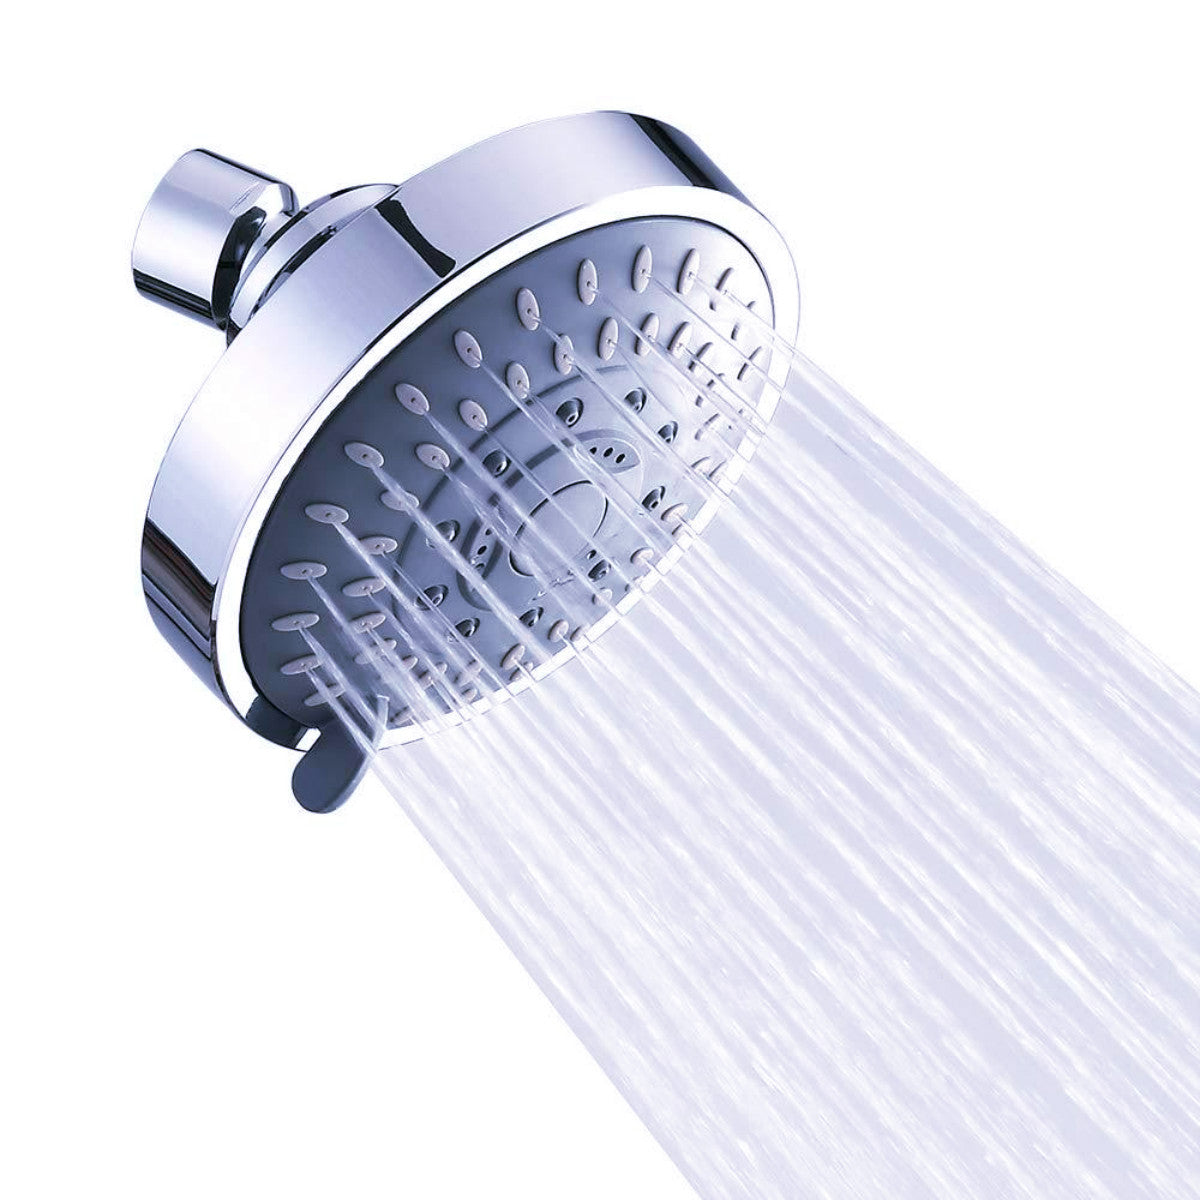 High Pressure Shower Head, Upgraded 5 Spray Patterns Adjustable Bathroom Shower Head, Multi-Functional Fixed Showerhead 360° Rotatable Rain Showerhead High Flow Shower Head